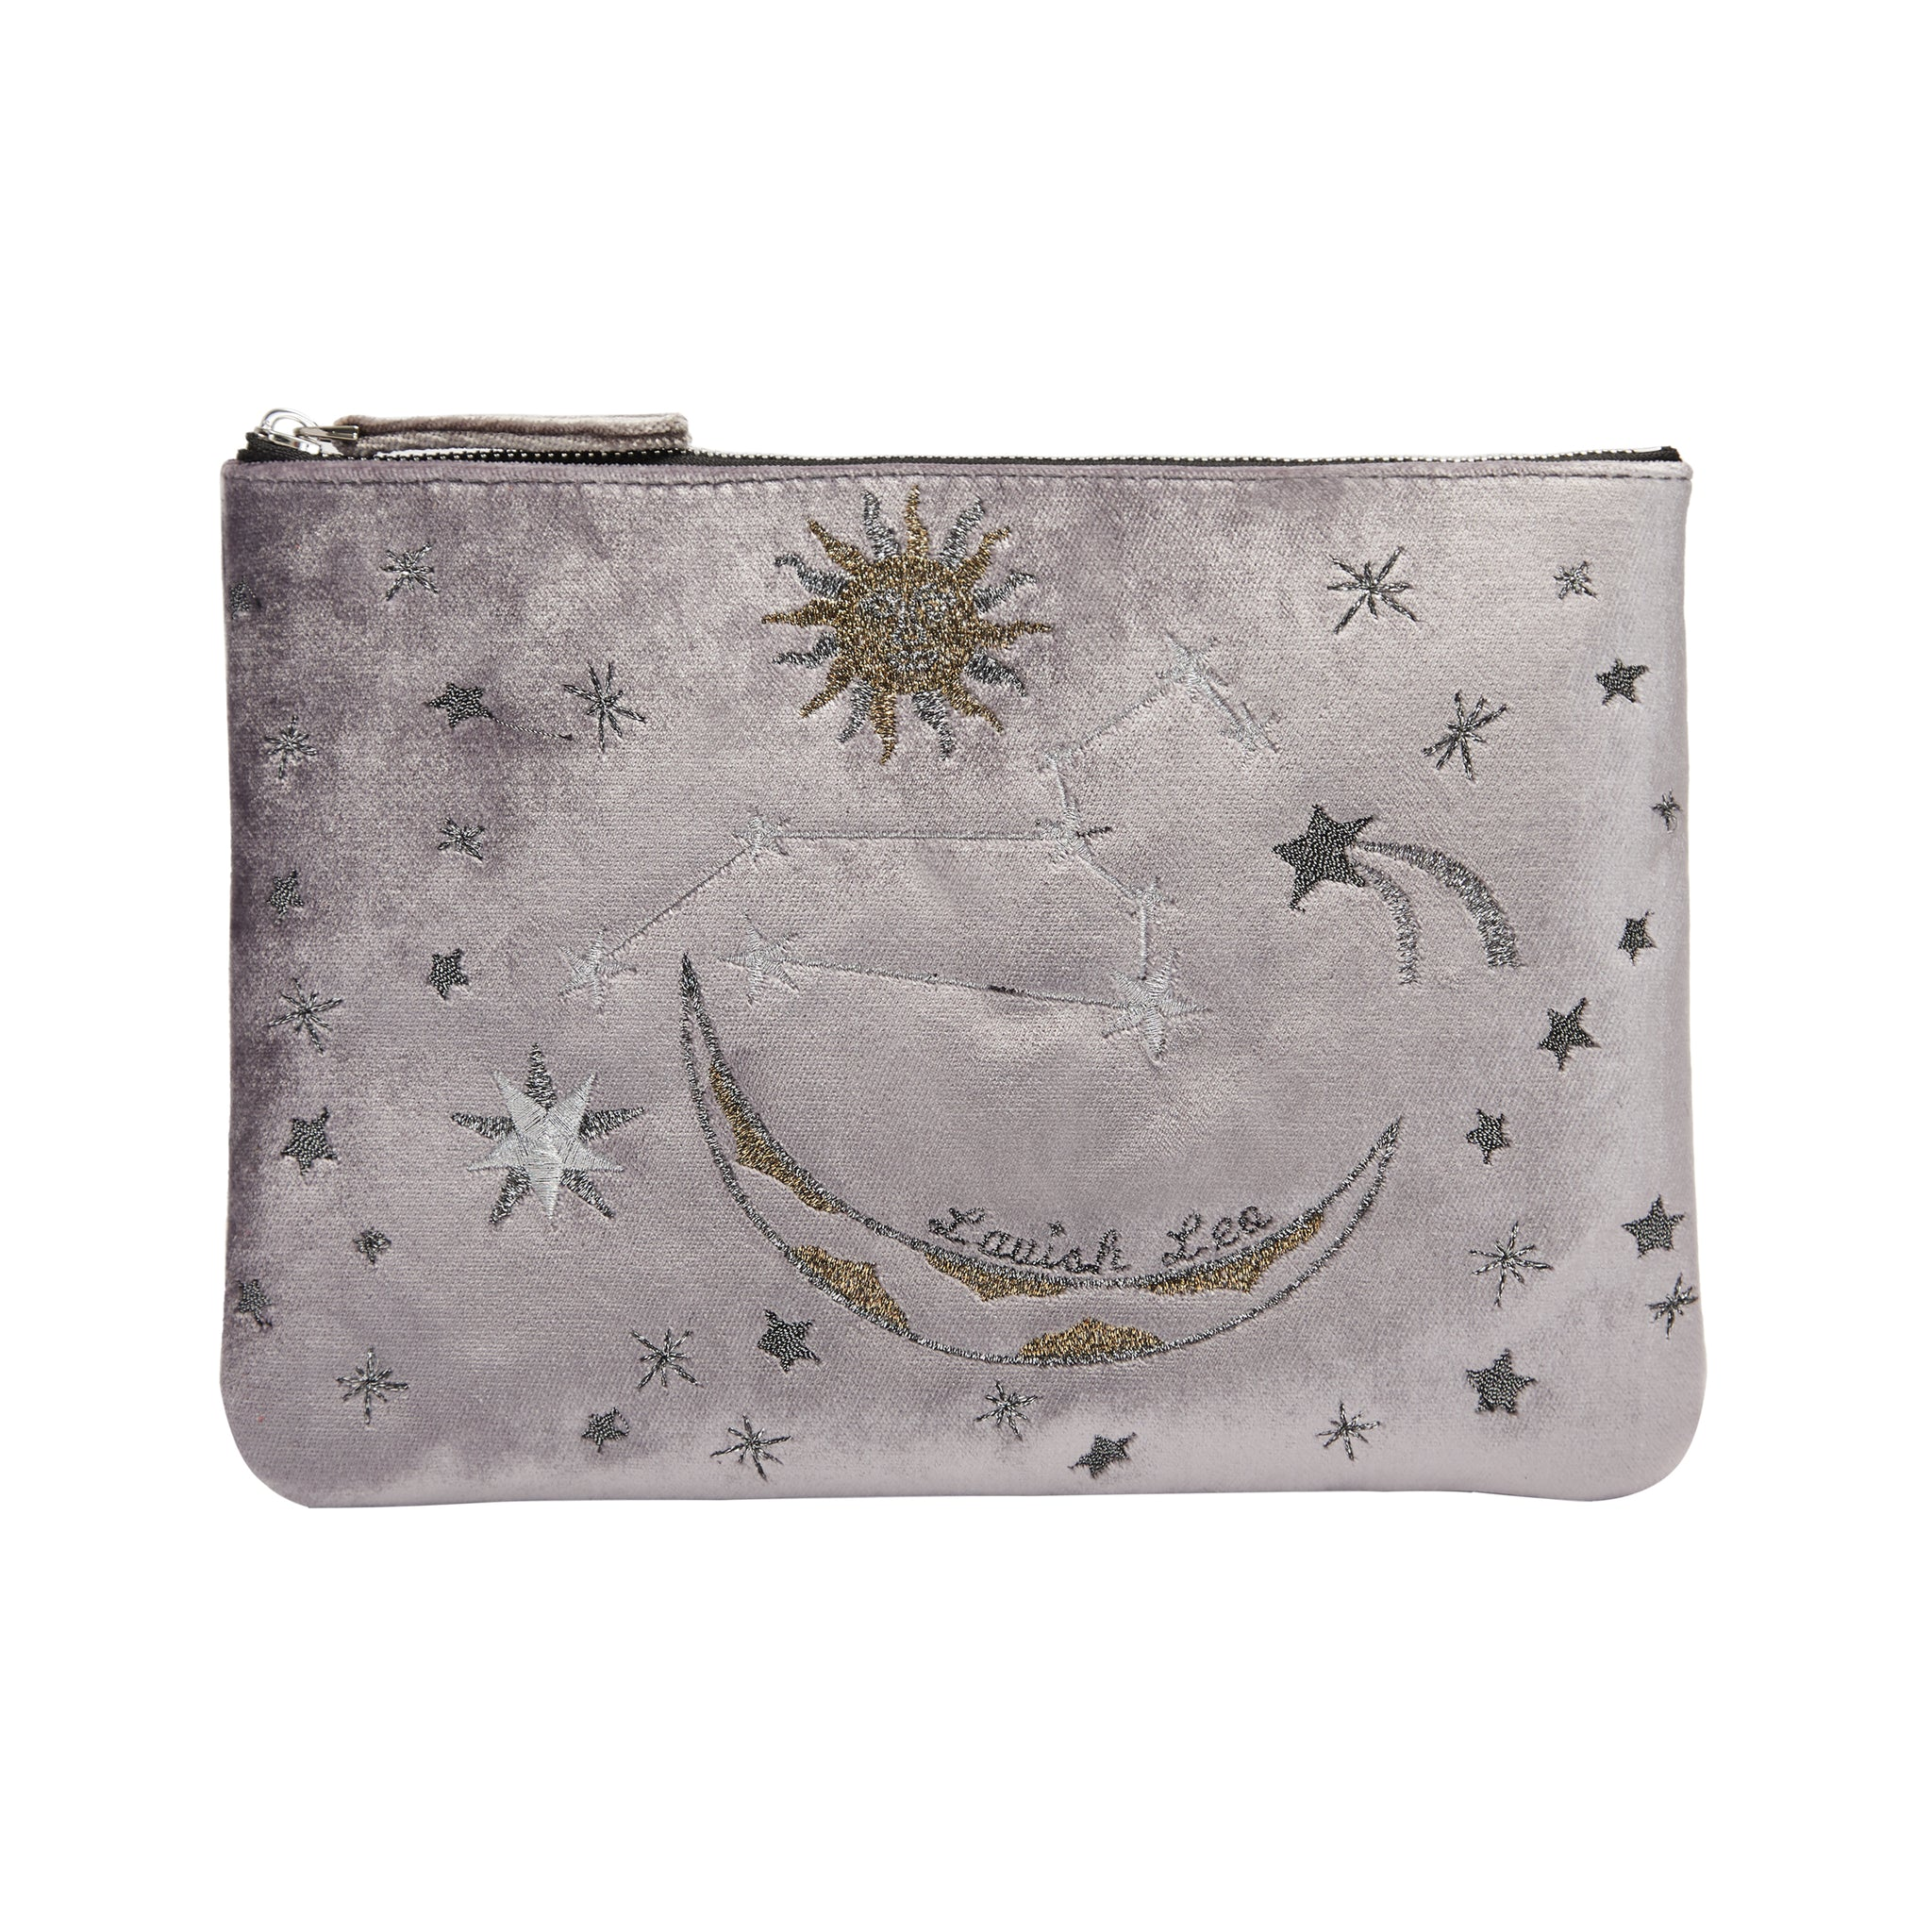 Horoscope Clutch with Velvet